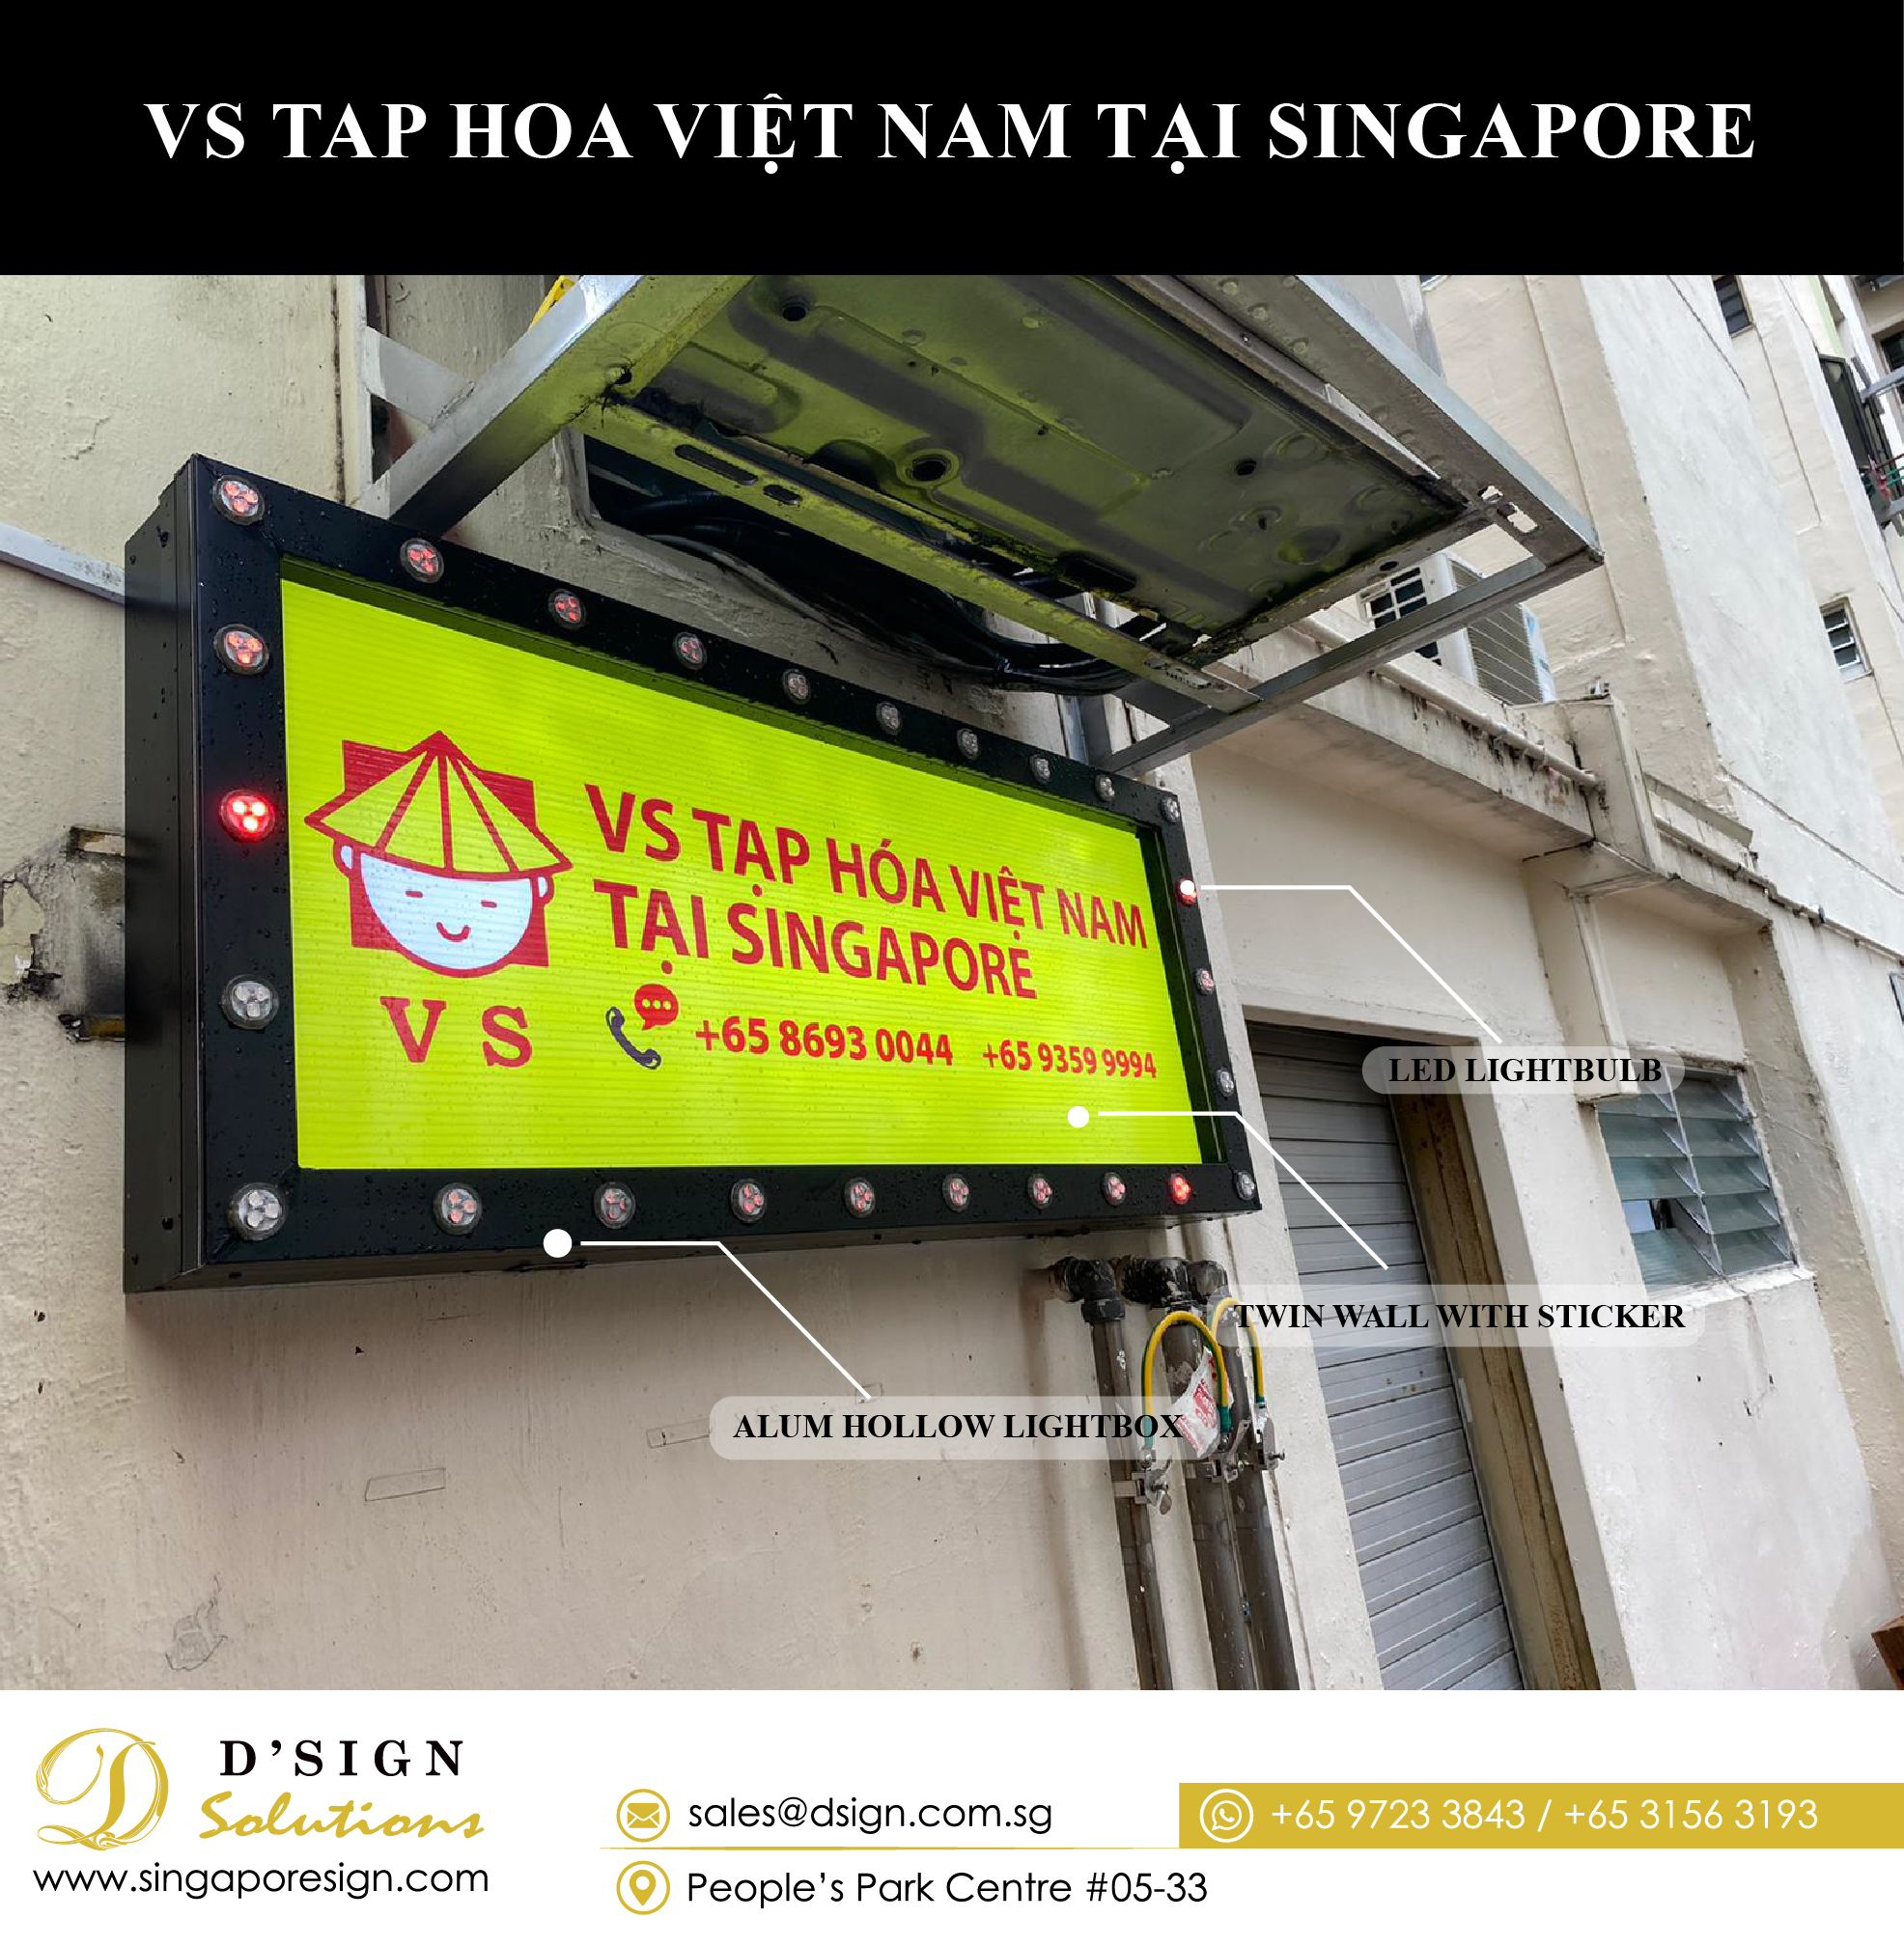 VS TAP HOA VIET NAM TAI SINGAPORE